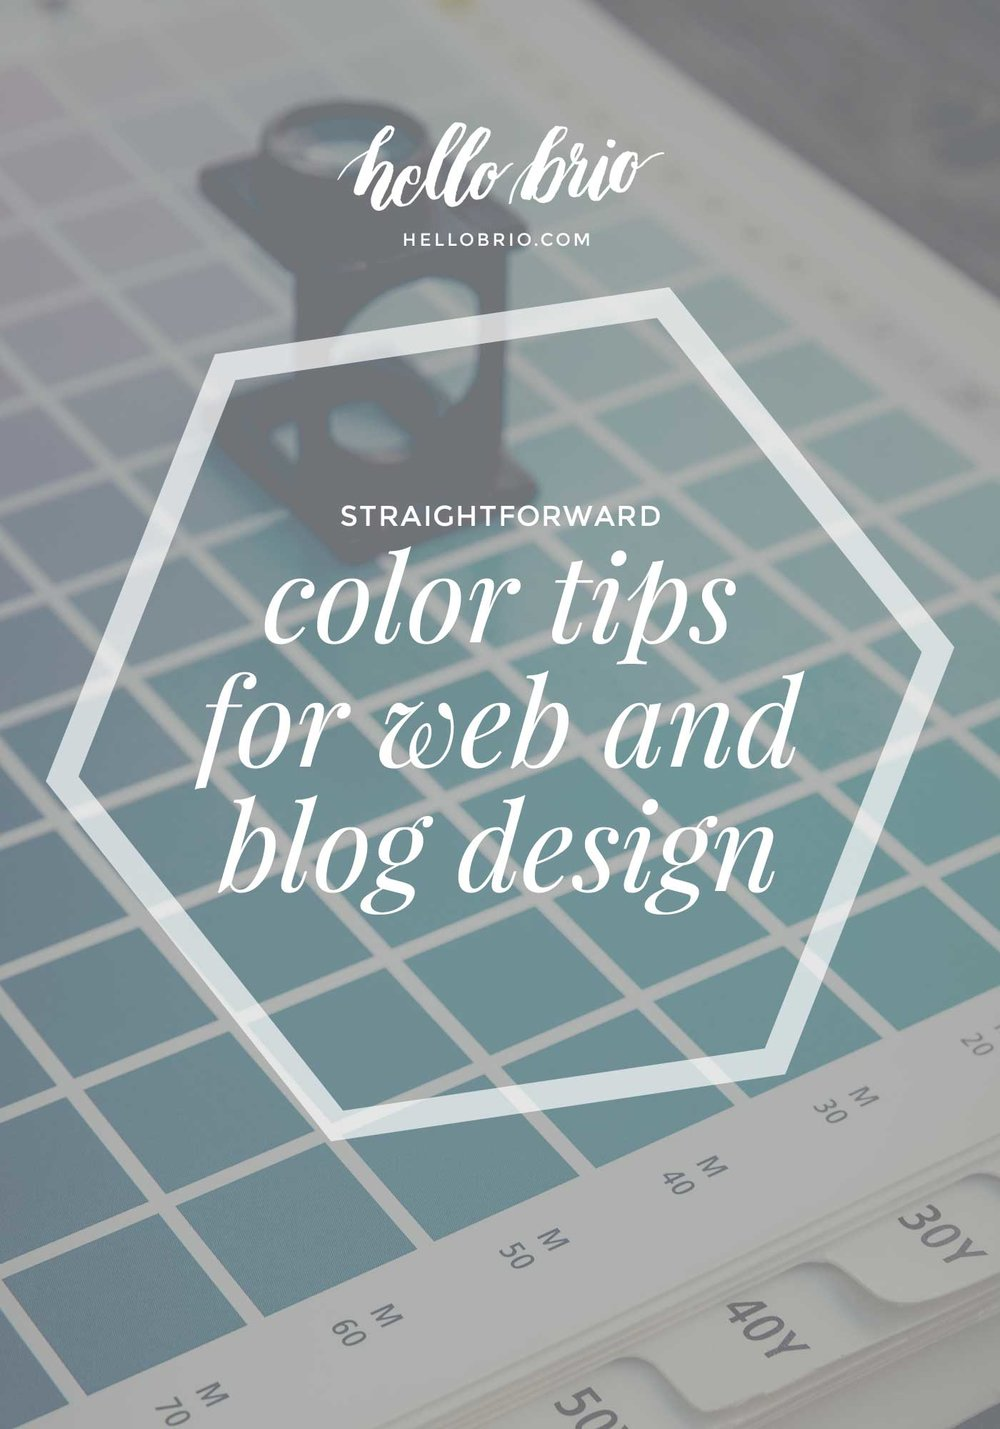 Straightforward Color Tips for Blog and Web Design - HelloBrio.com